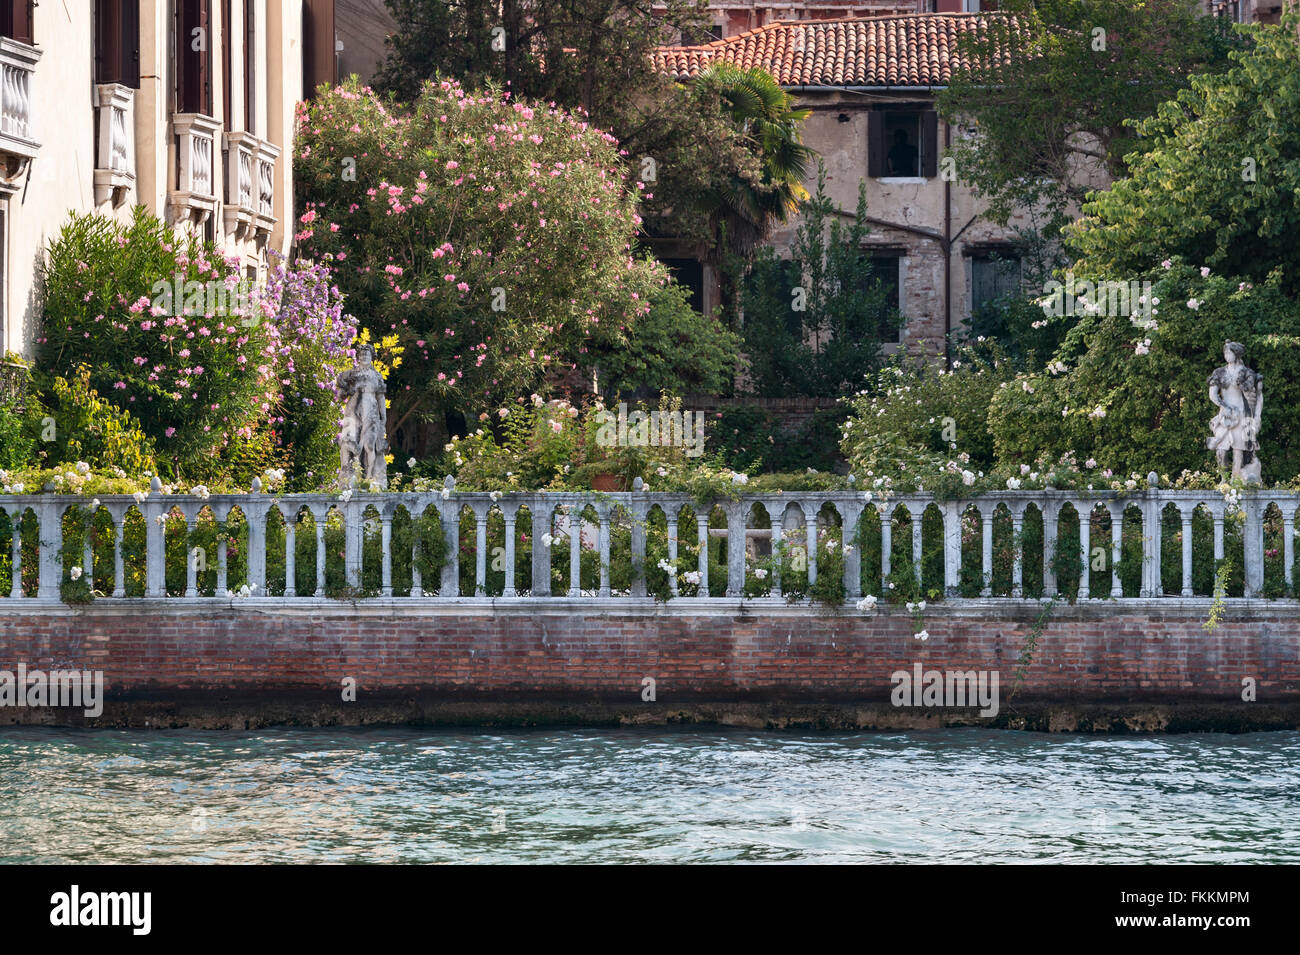 balustrade with garden stockfotos balustrade with garden bilder alamy. Black Bedroom Furniture Sets. Home Design Ideas